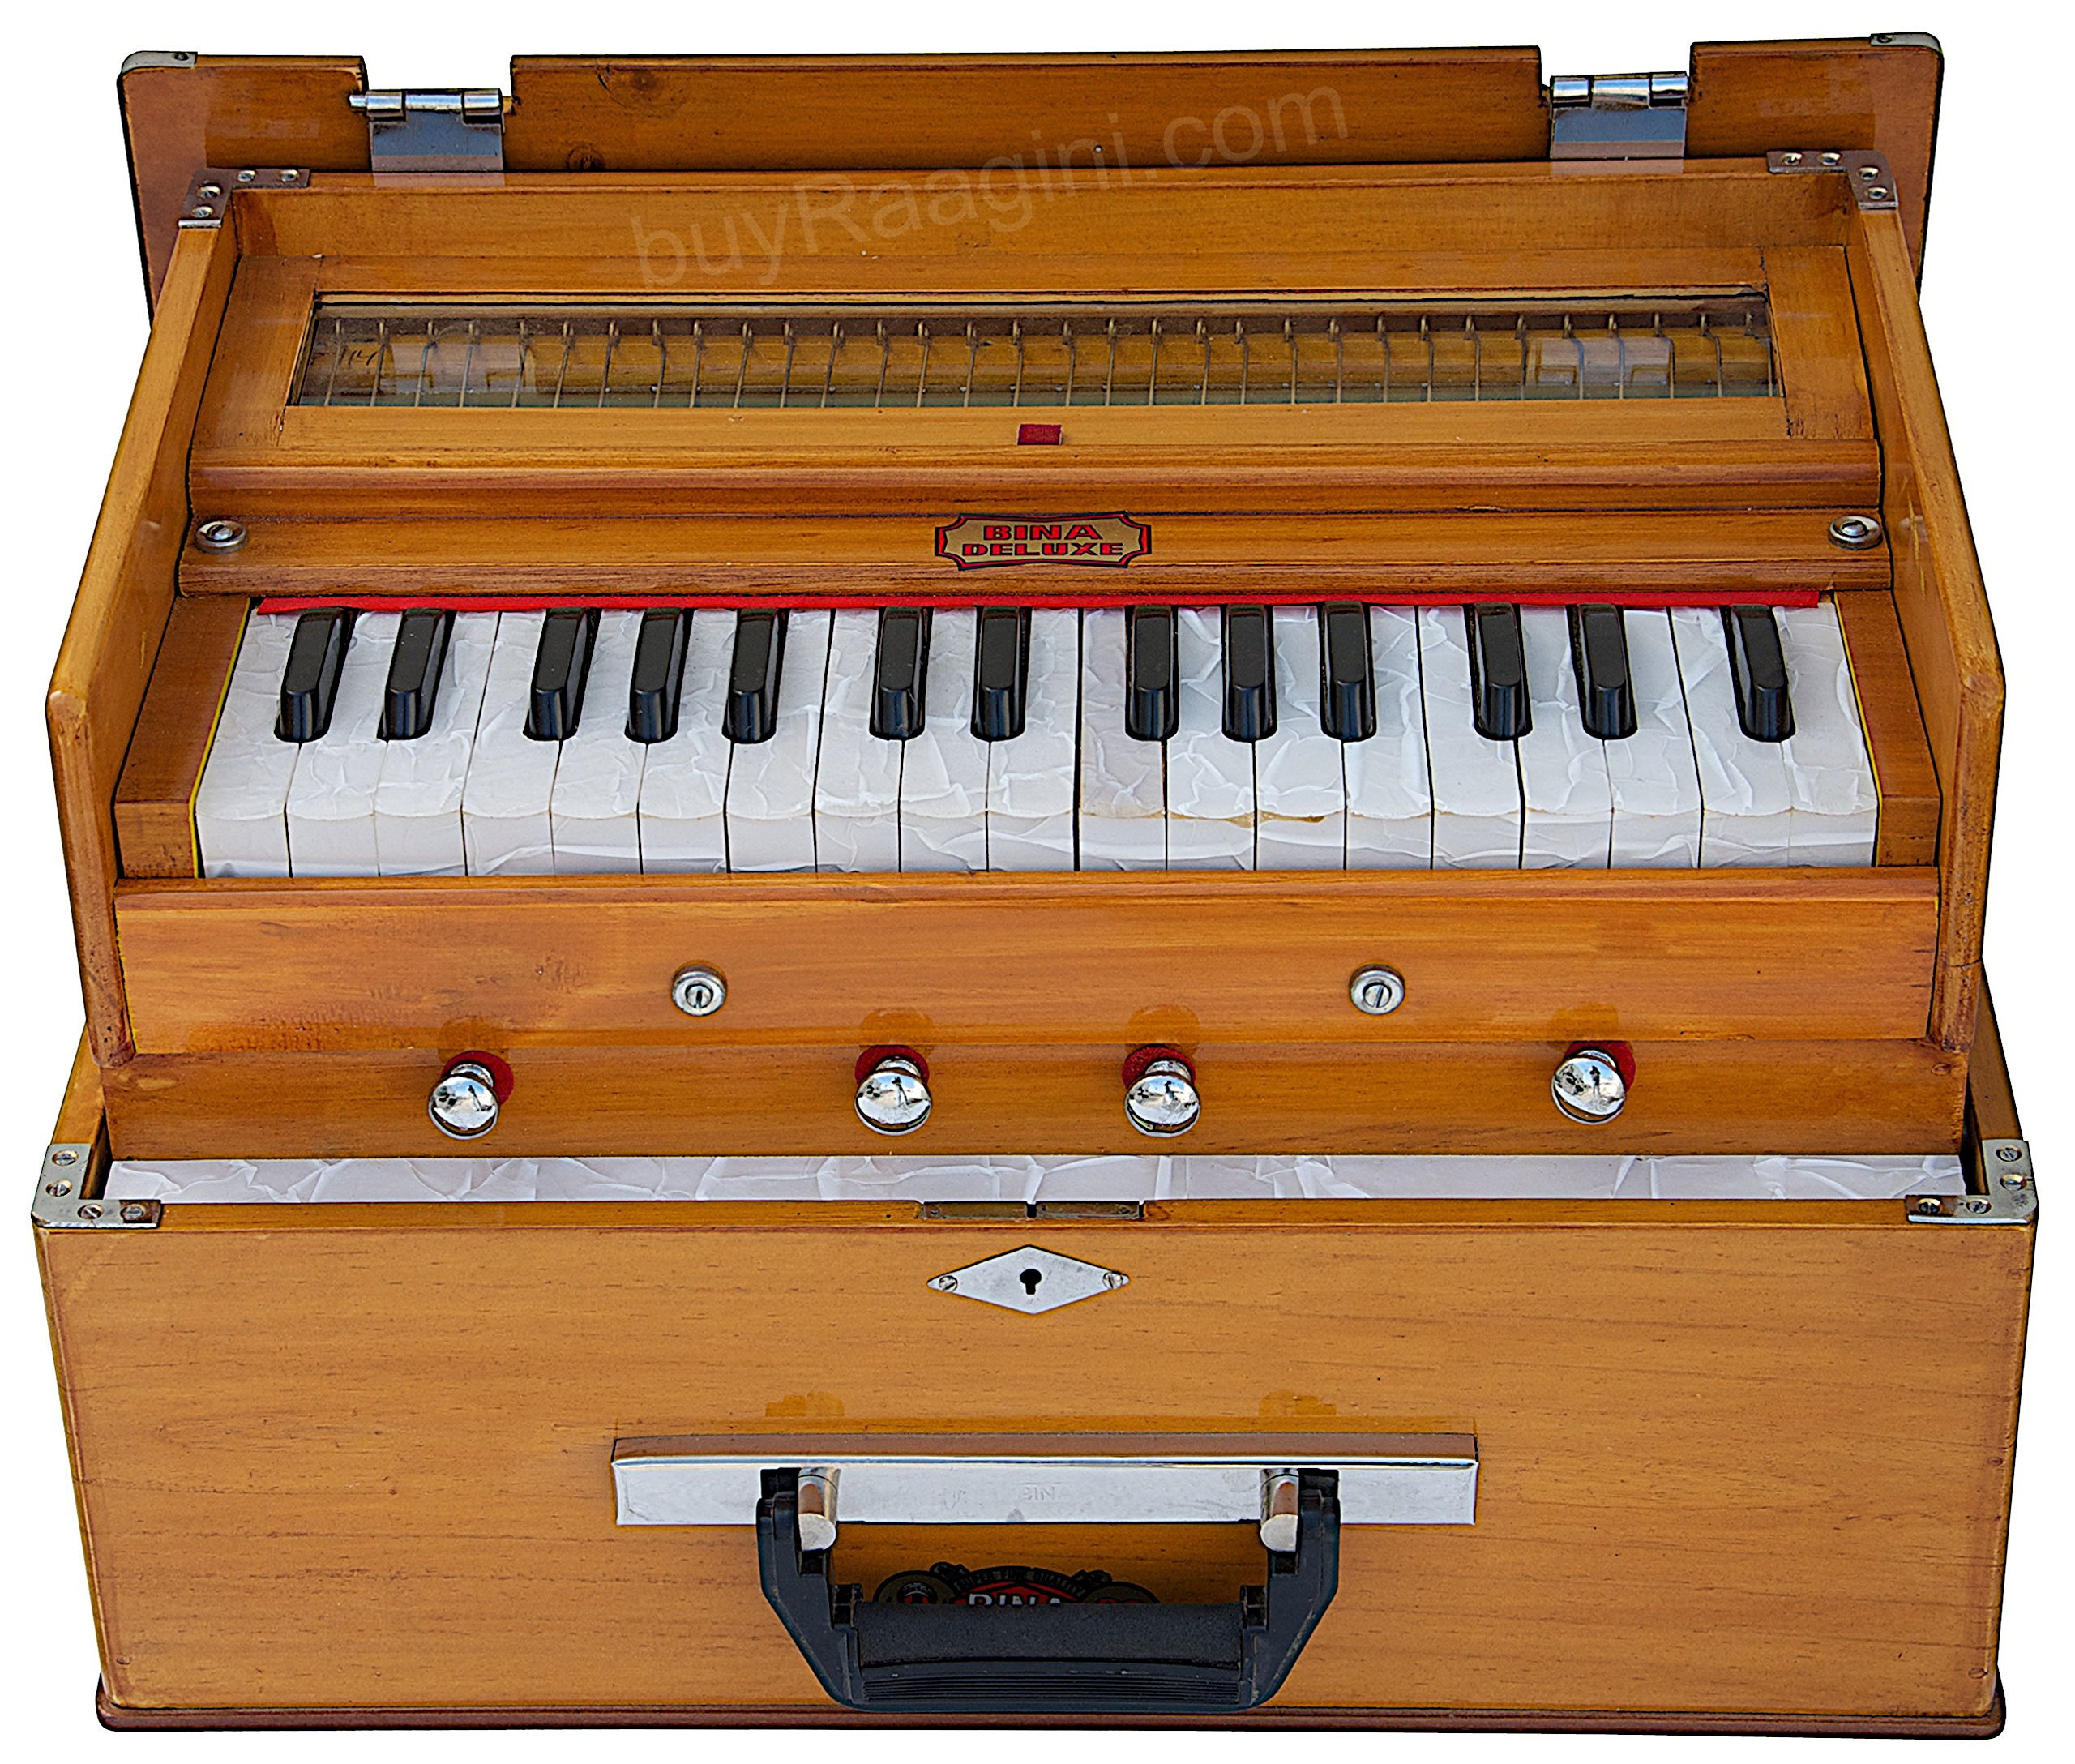 BINA 23B Deluxe, Harmonium, 2 1/2 Octaves, 32 Keys, Small, Portable, Compact, Special Reeds, Safri, Natural Color, Bag, Book, Kirtan, Musical Instrument Indian (PDI-DAA)